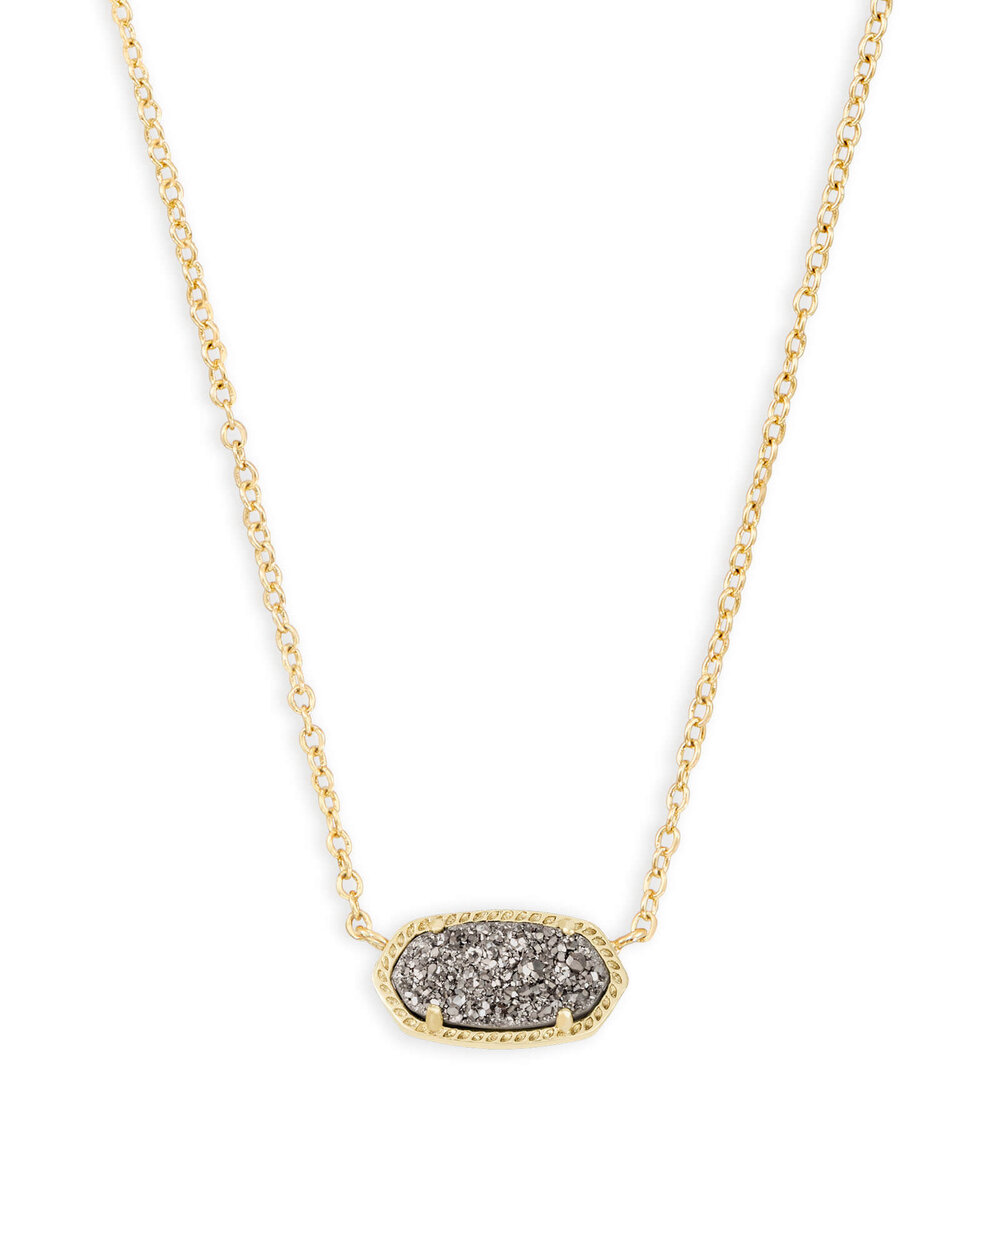 kendra-scott-elisa-gold-pendant-necklace-in-platinum-drusy_00_default_lg.jpg